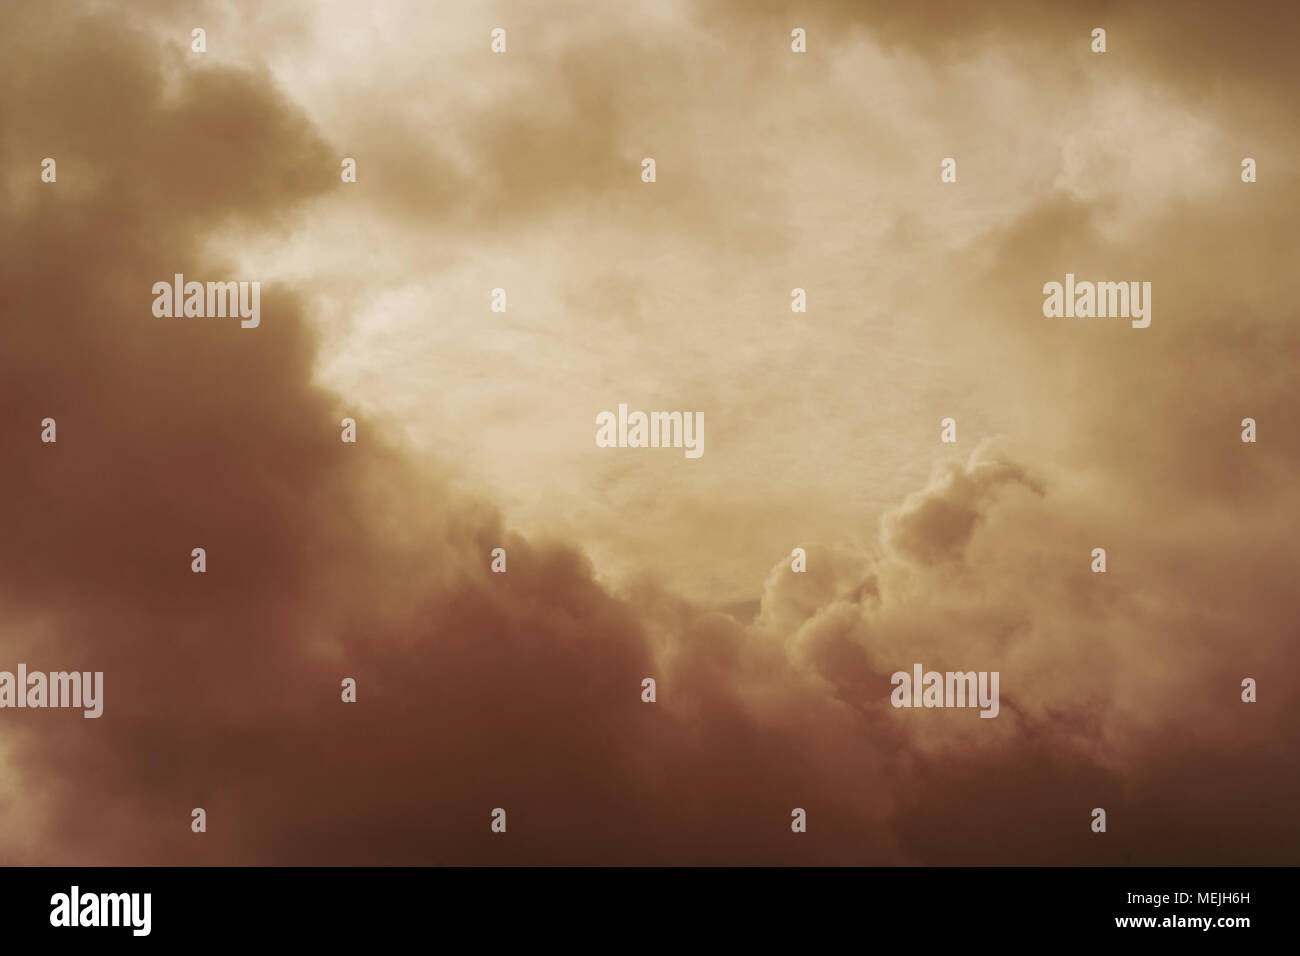 Sky covered with clouds in vintage style. Suitable for backgrounds. - Stock Image